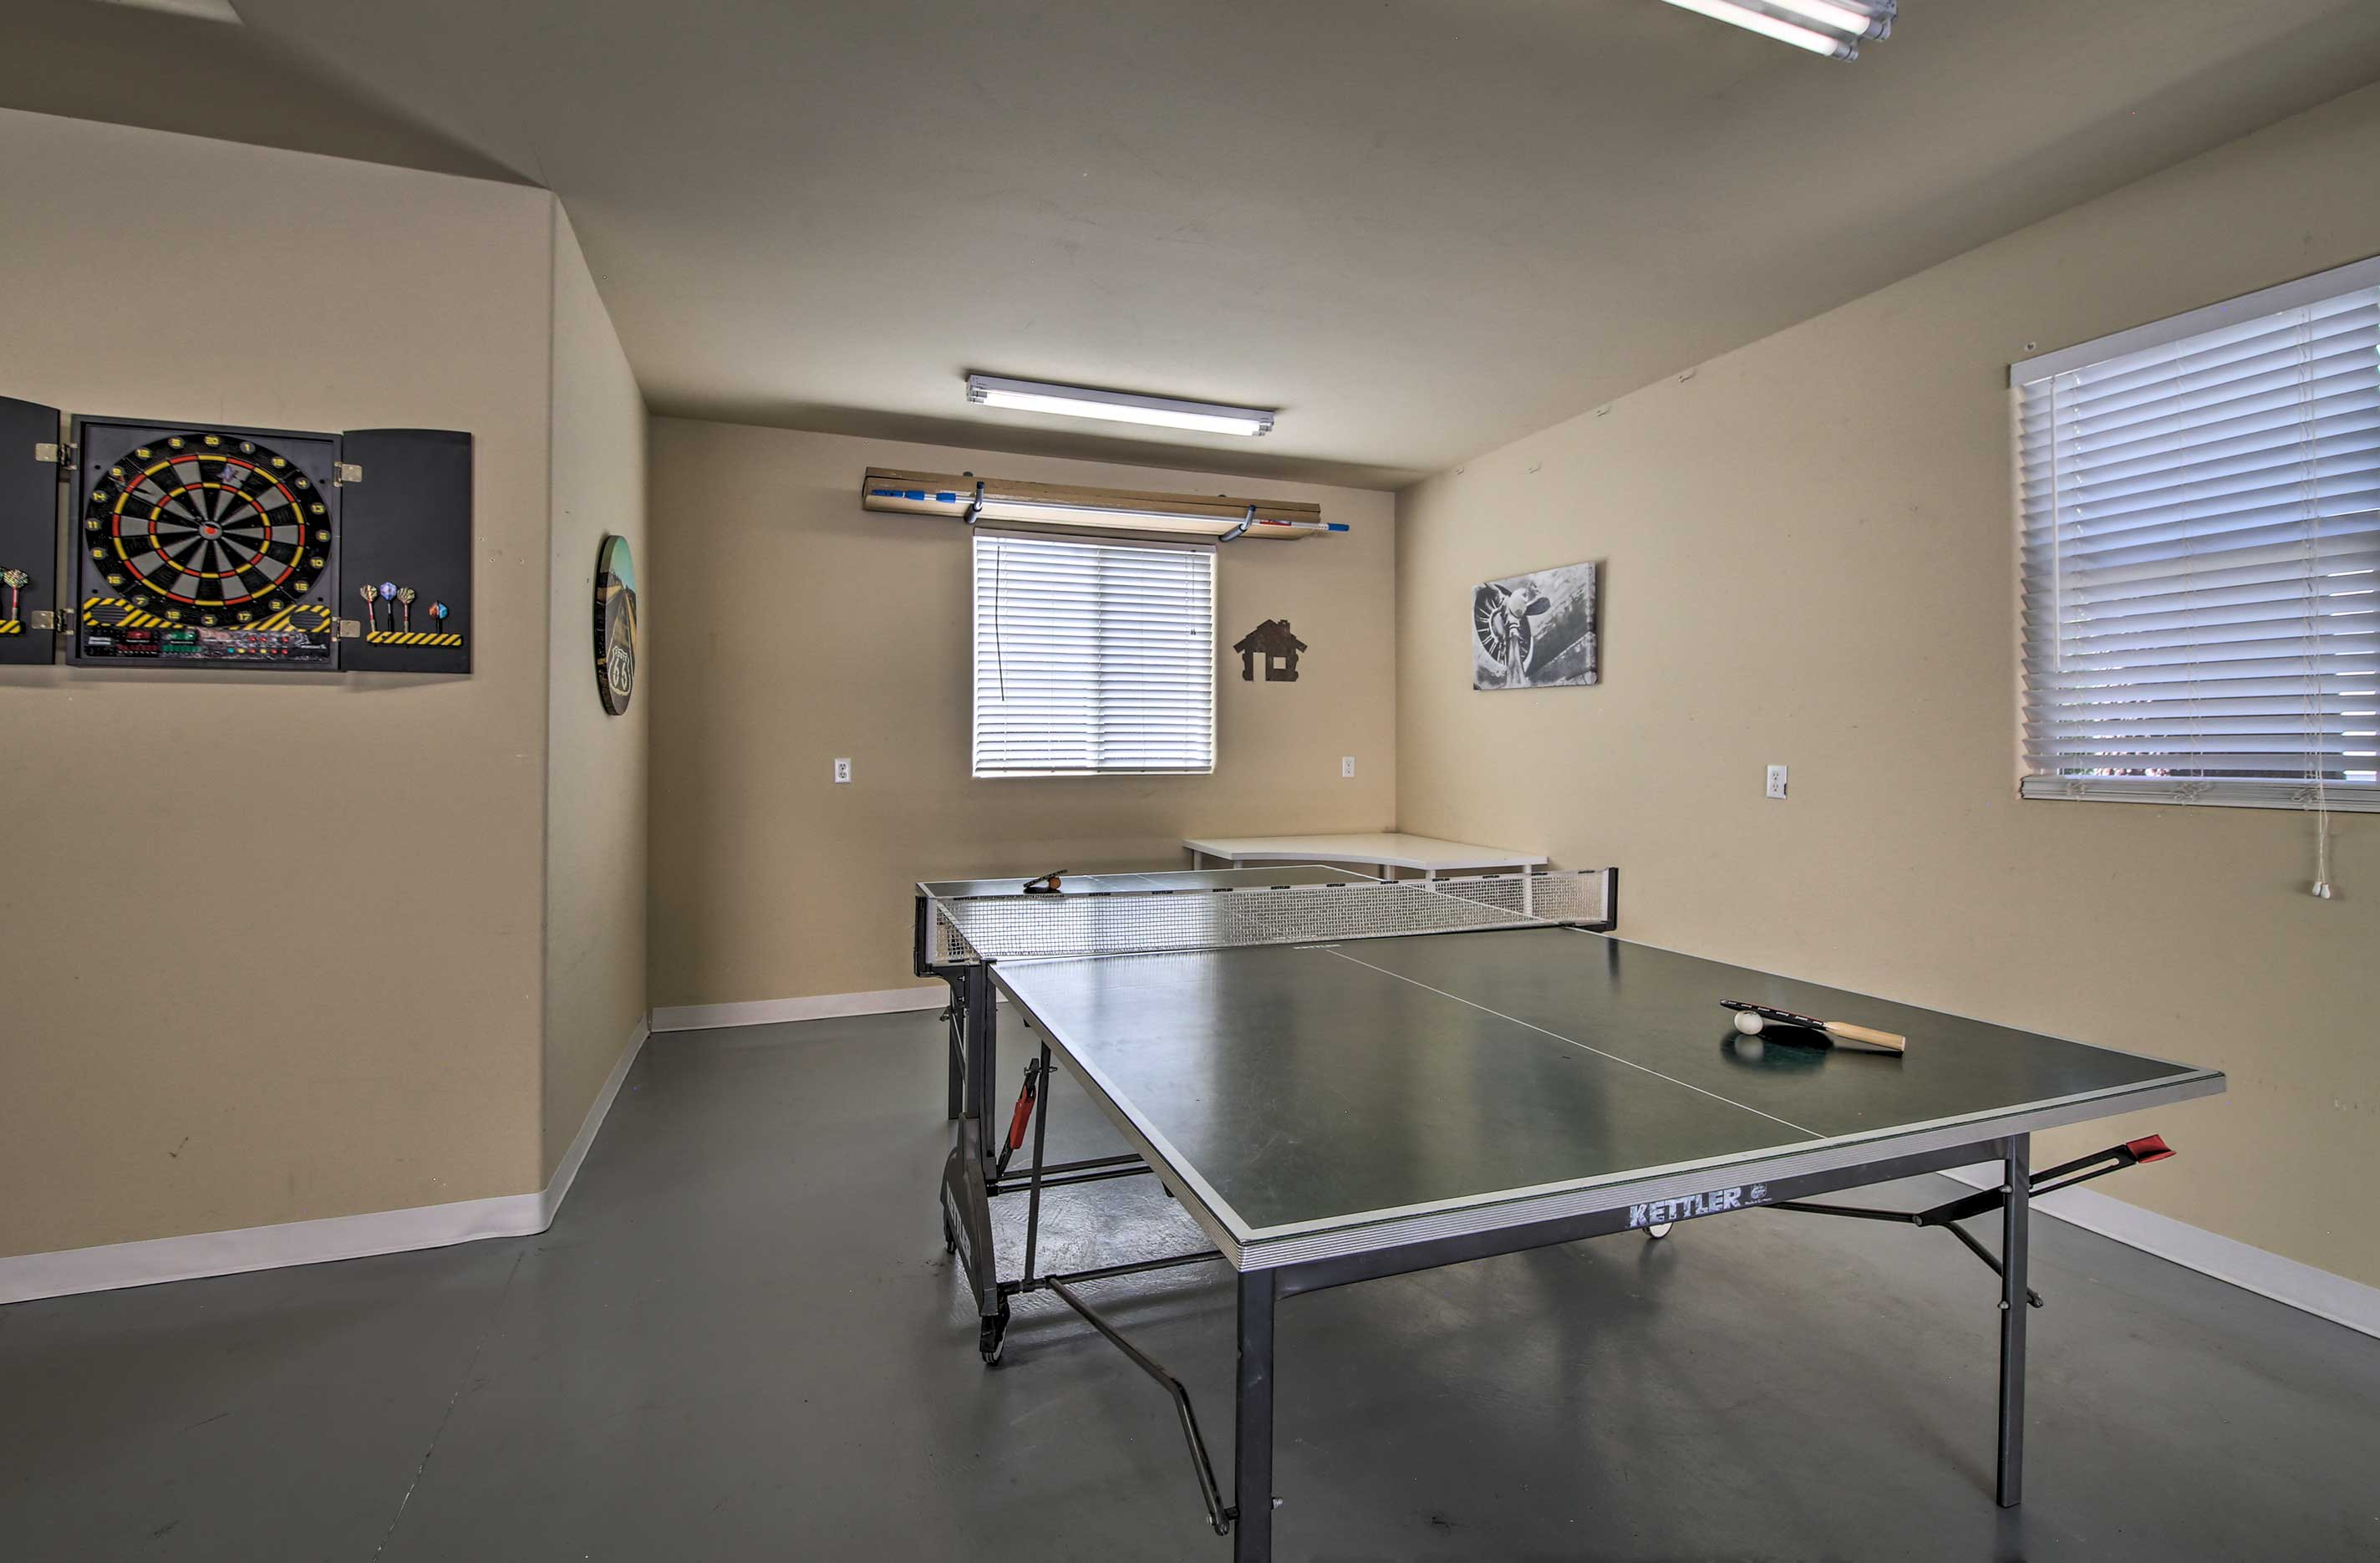 Challenge a friend to a competitive game of ping pong or darts!